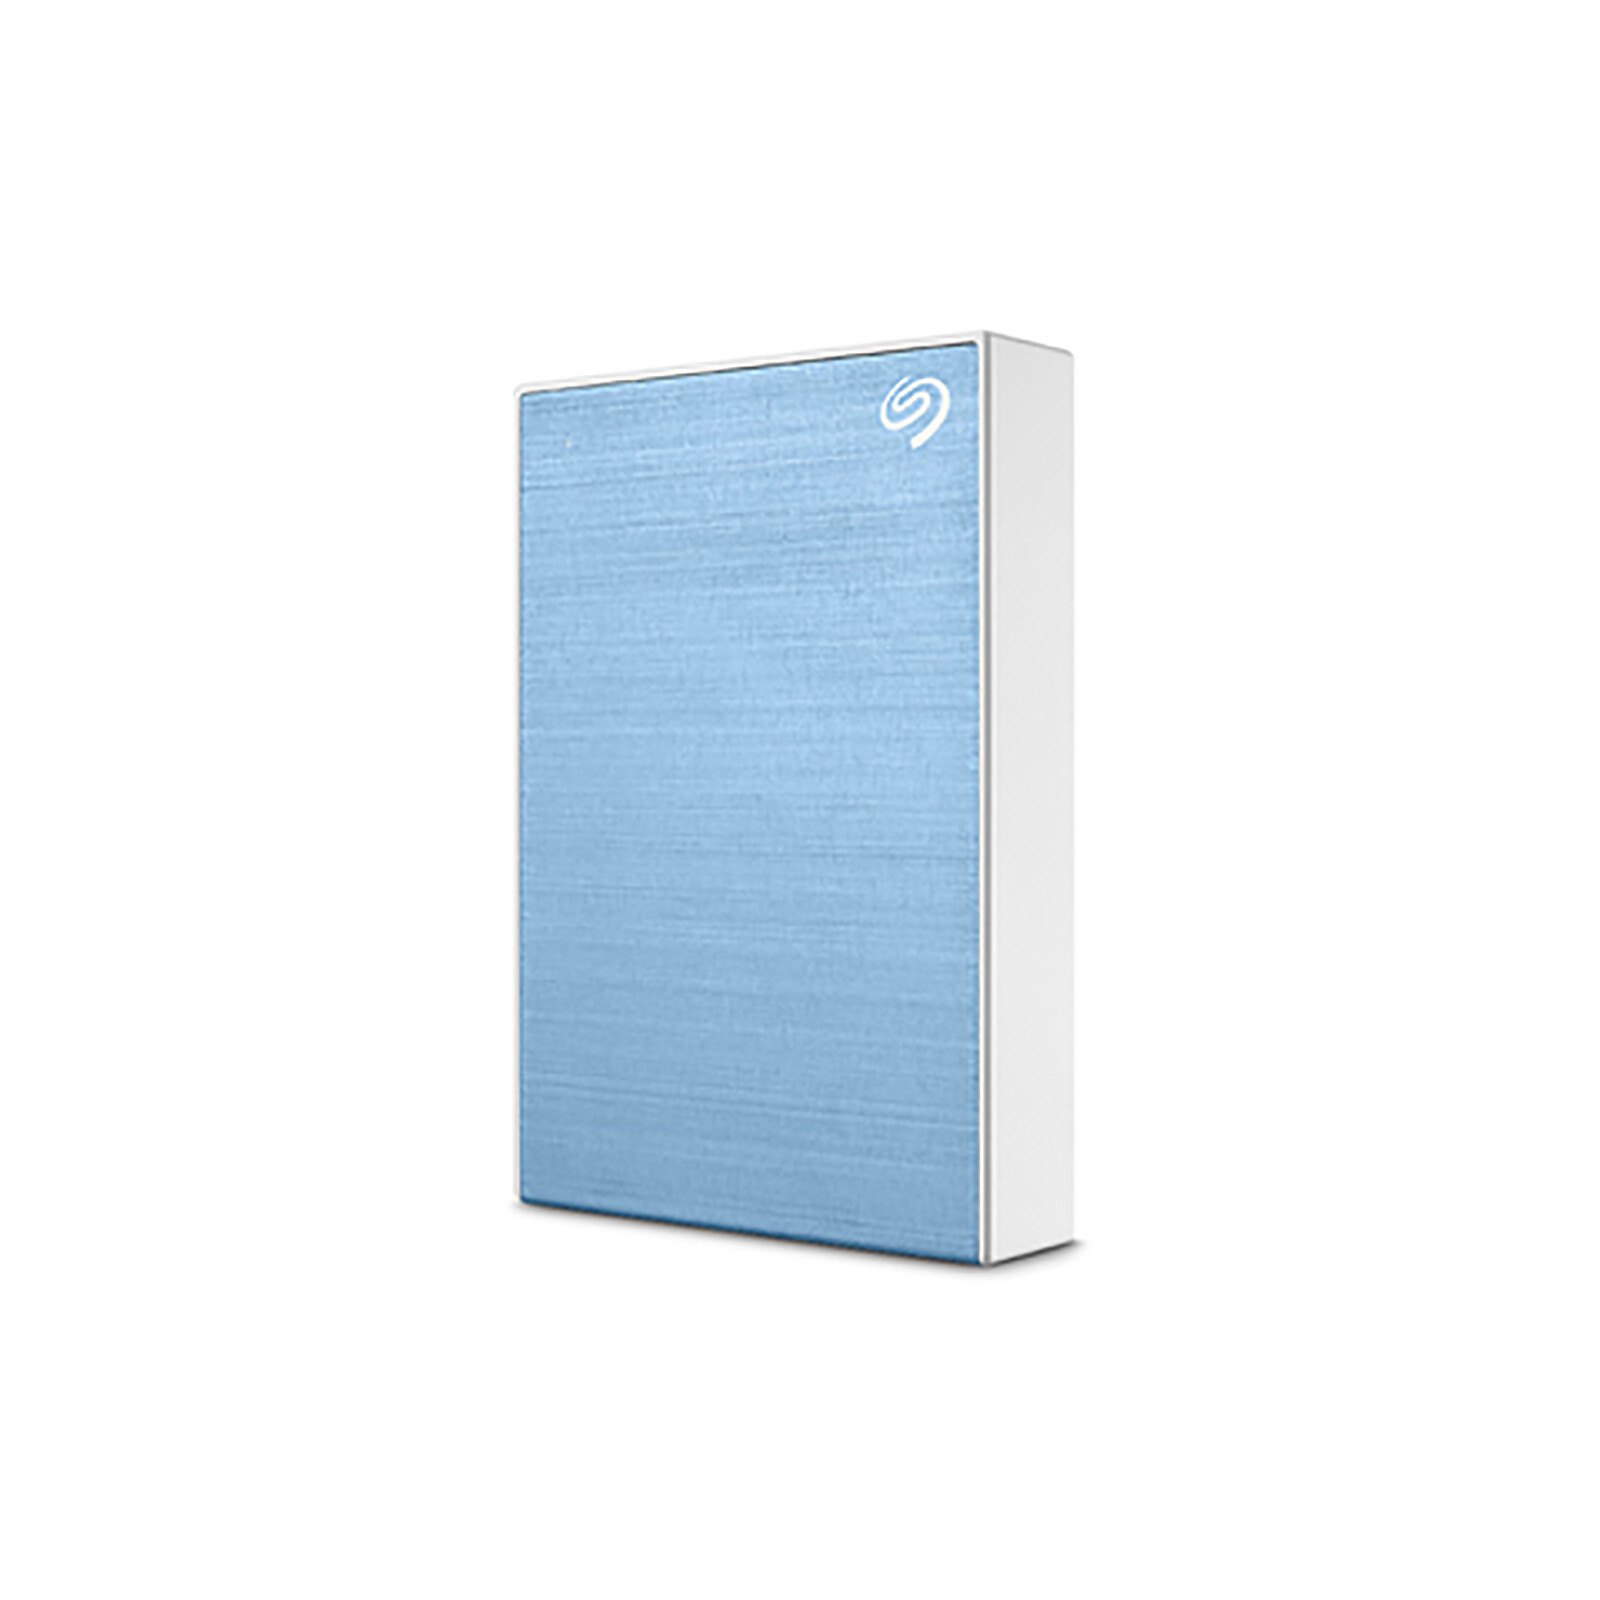 Seagate One Touch 5TB USB 3 light blue